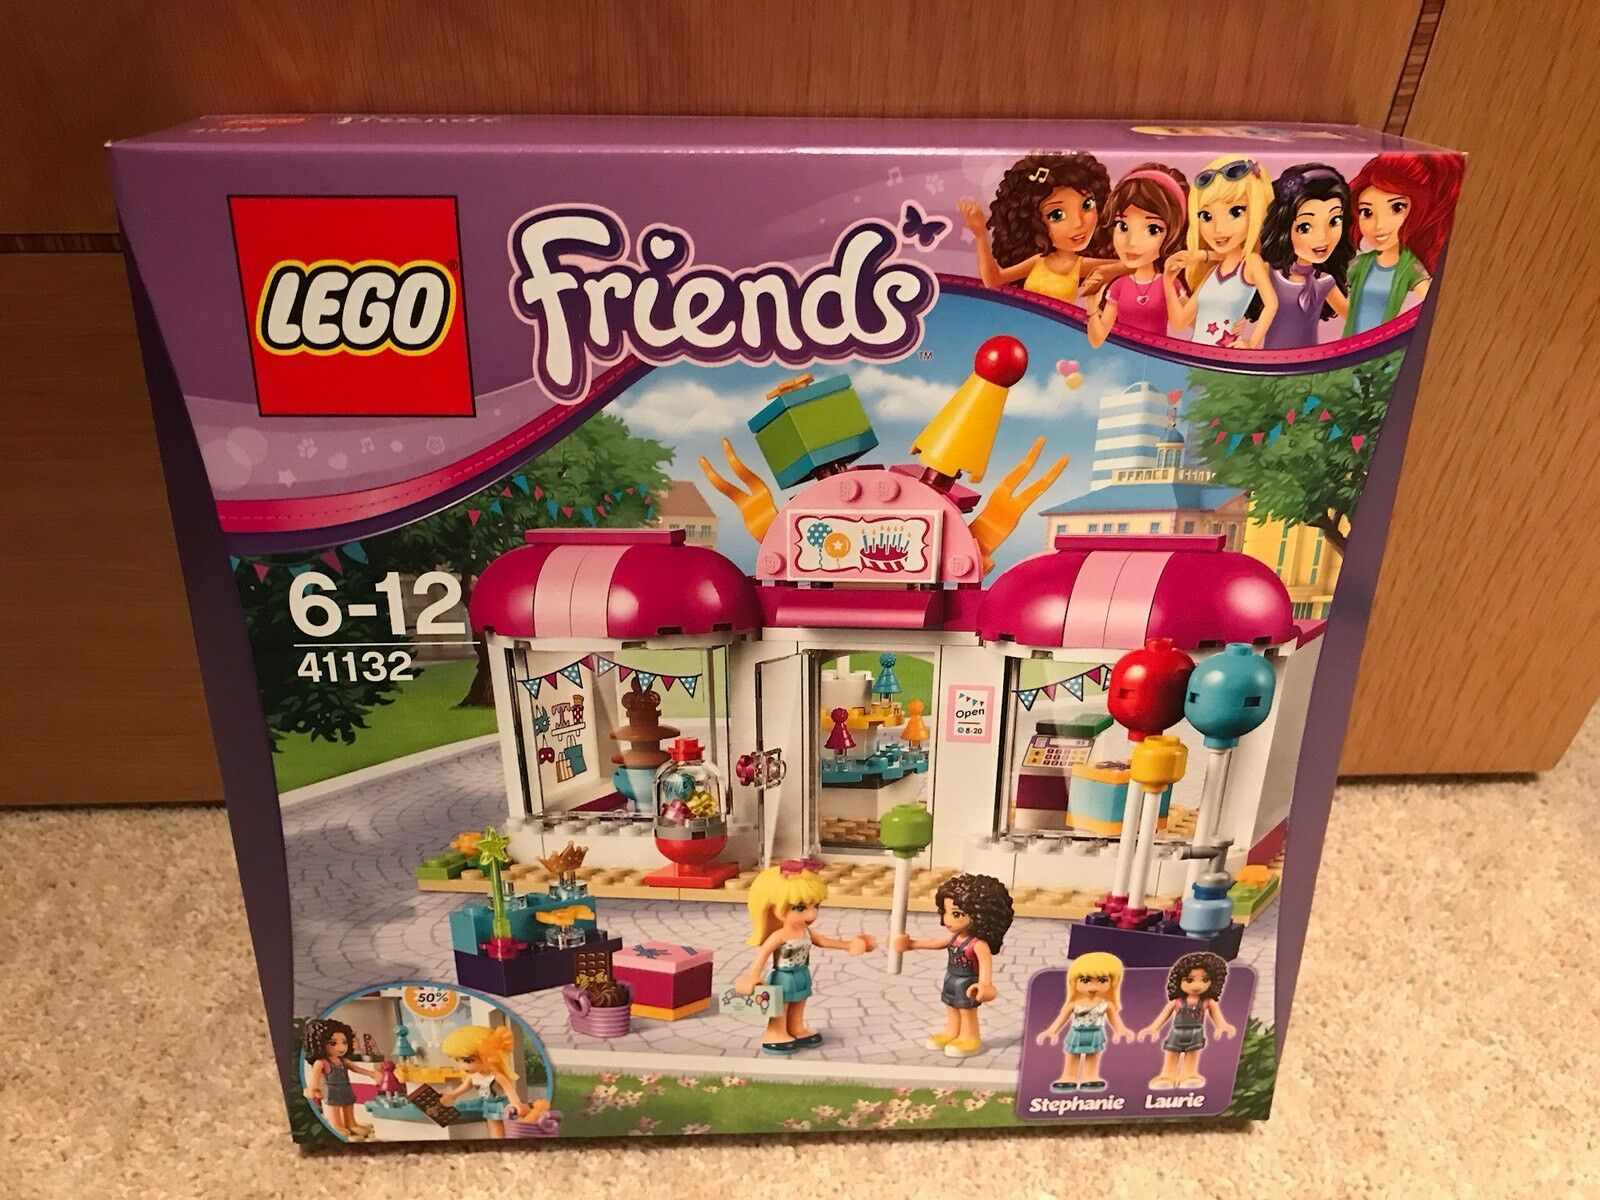 Lego 41132 Friends Heartlake Party Shop 41132  NEW